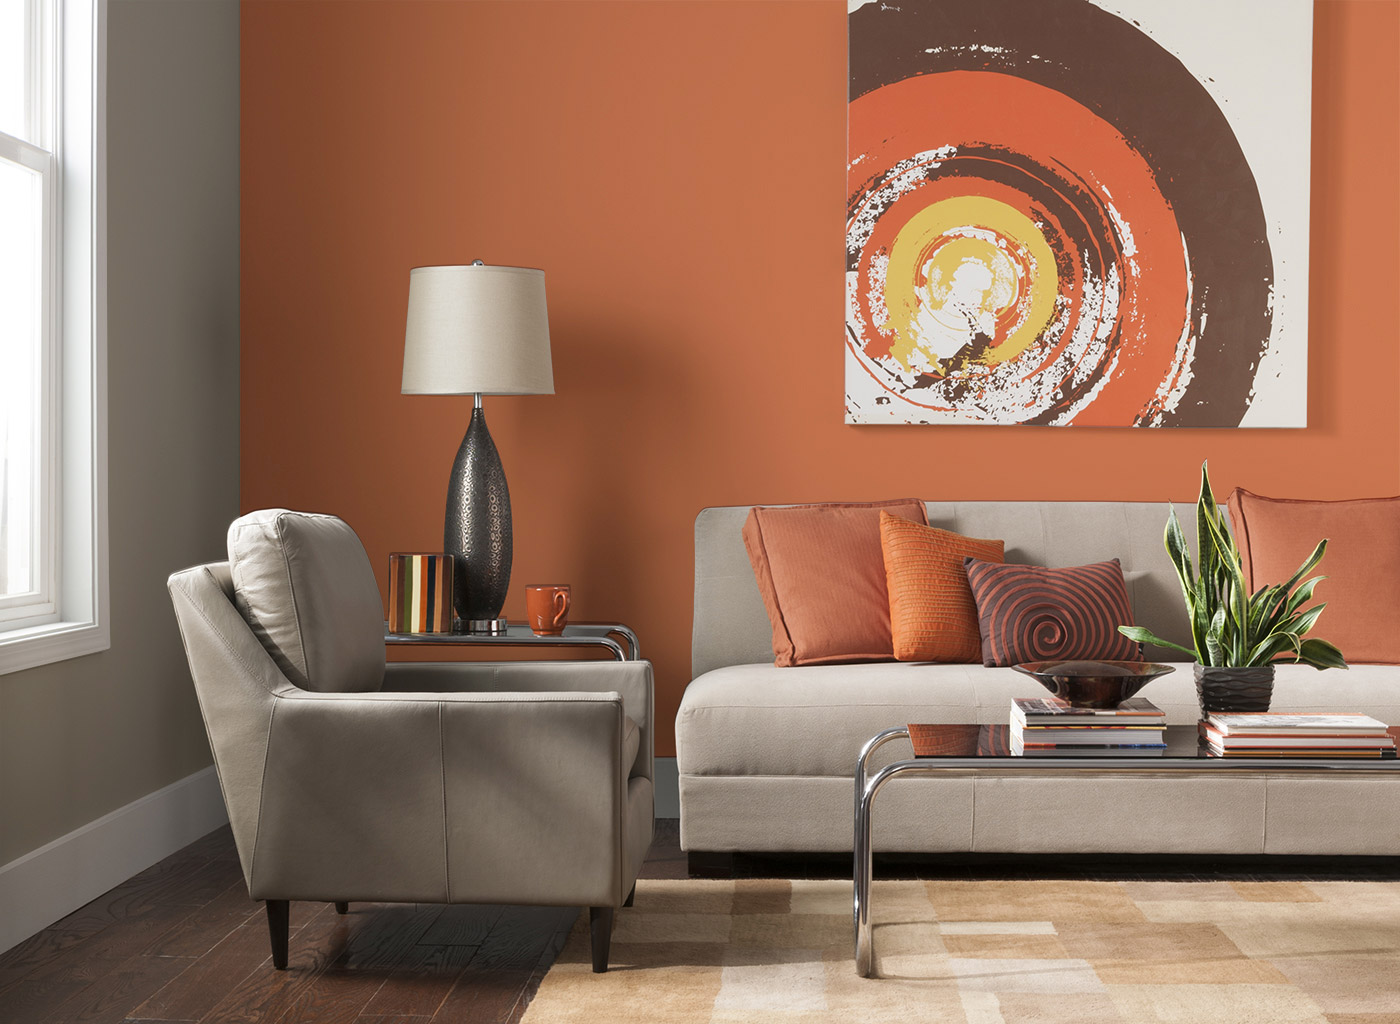 50 Living Room Paint Color Ideas for the Heart of the Home ... on Room Painting id=13002